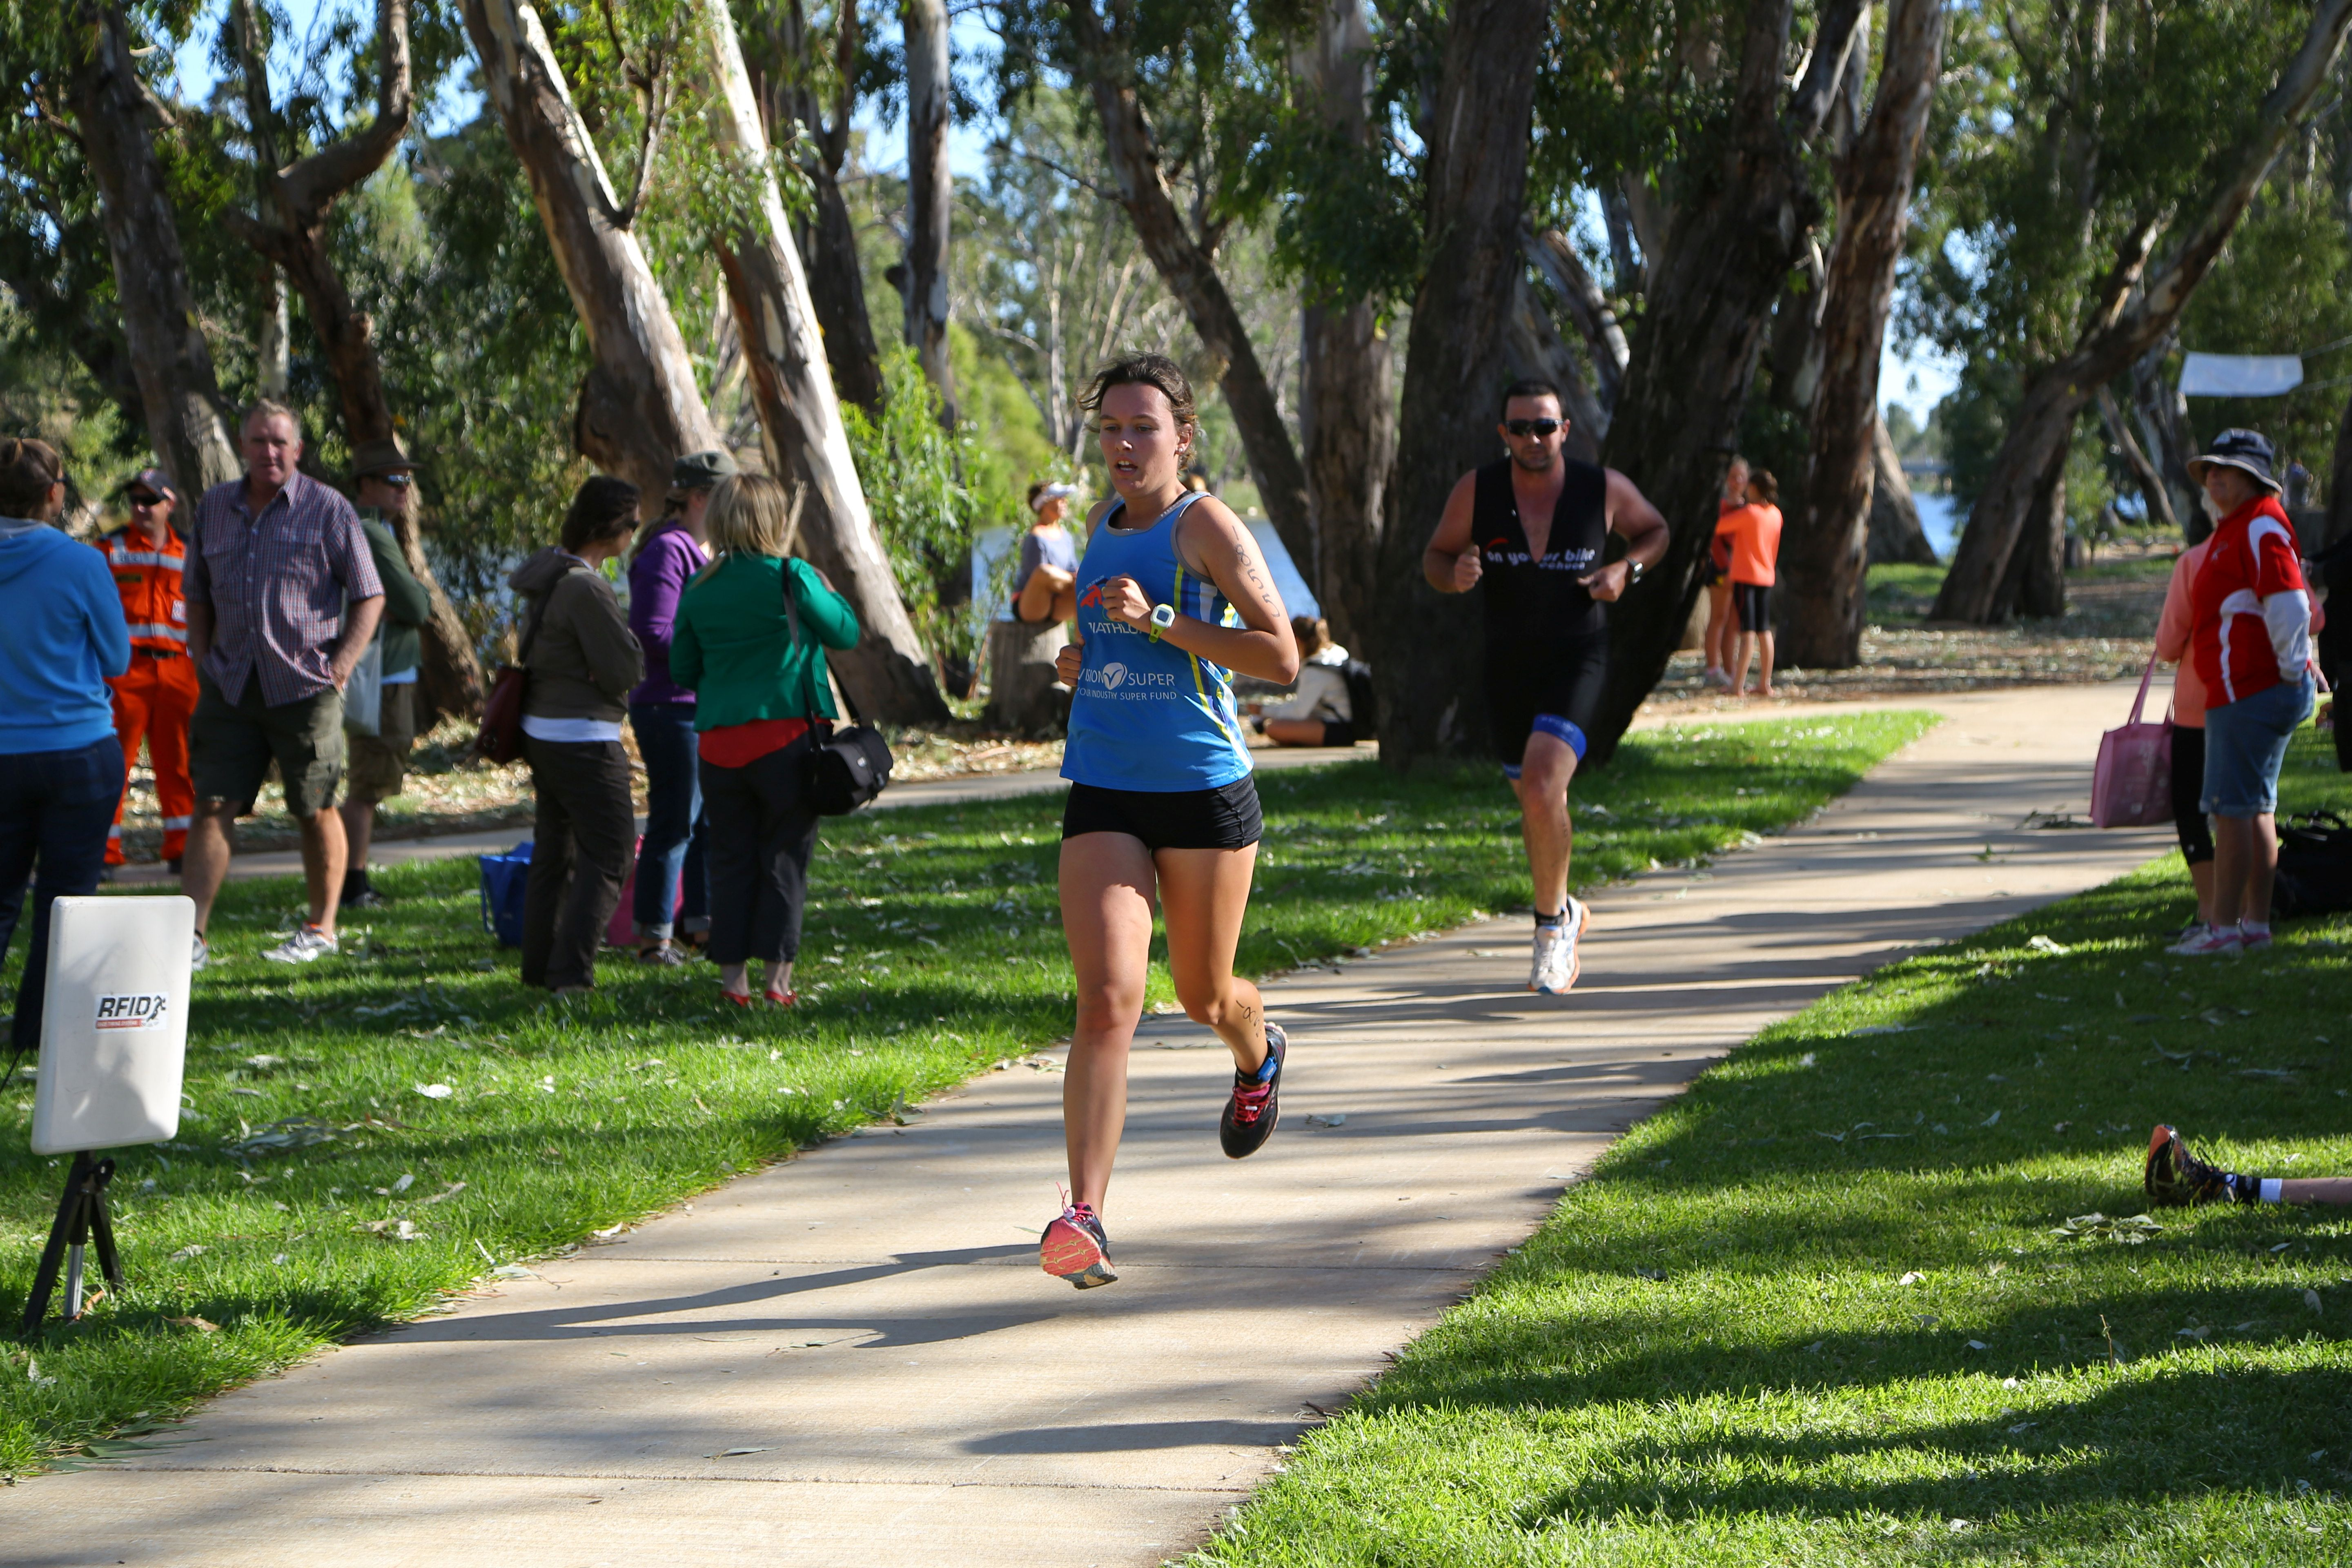 Bridgewater Triathlon. Competitors competing in the running event along the path beside the Loddon River.